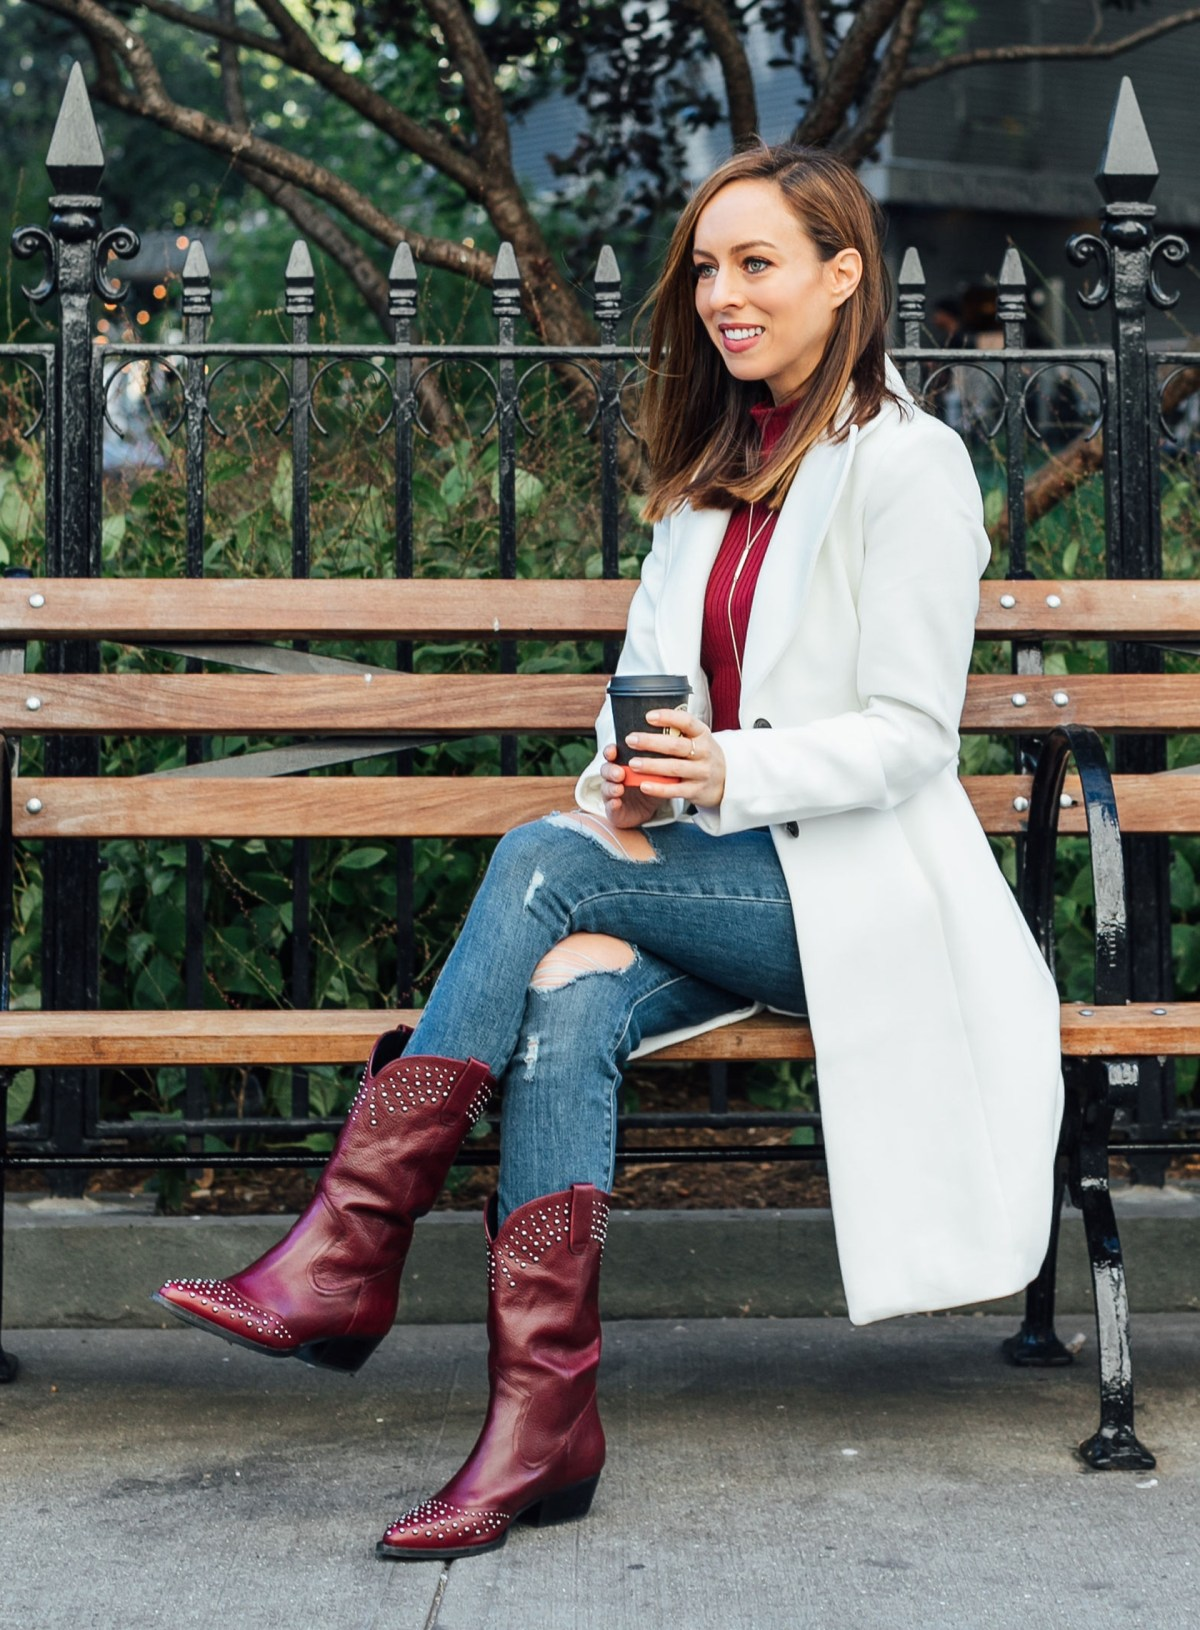 sydne style shows how to wear cowboy boots with jeans and